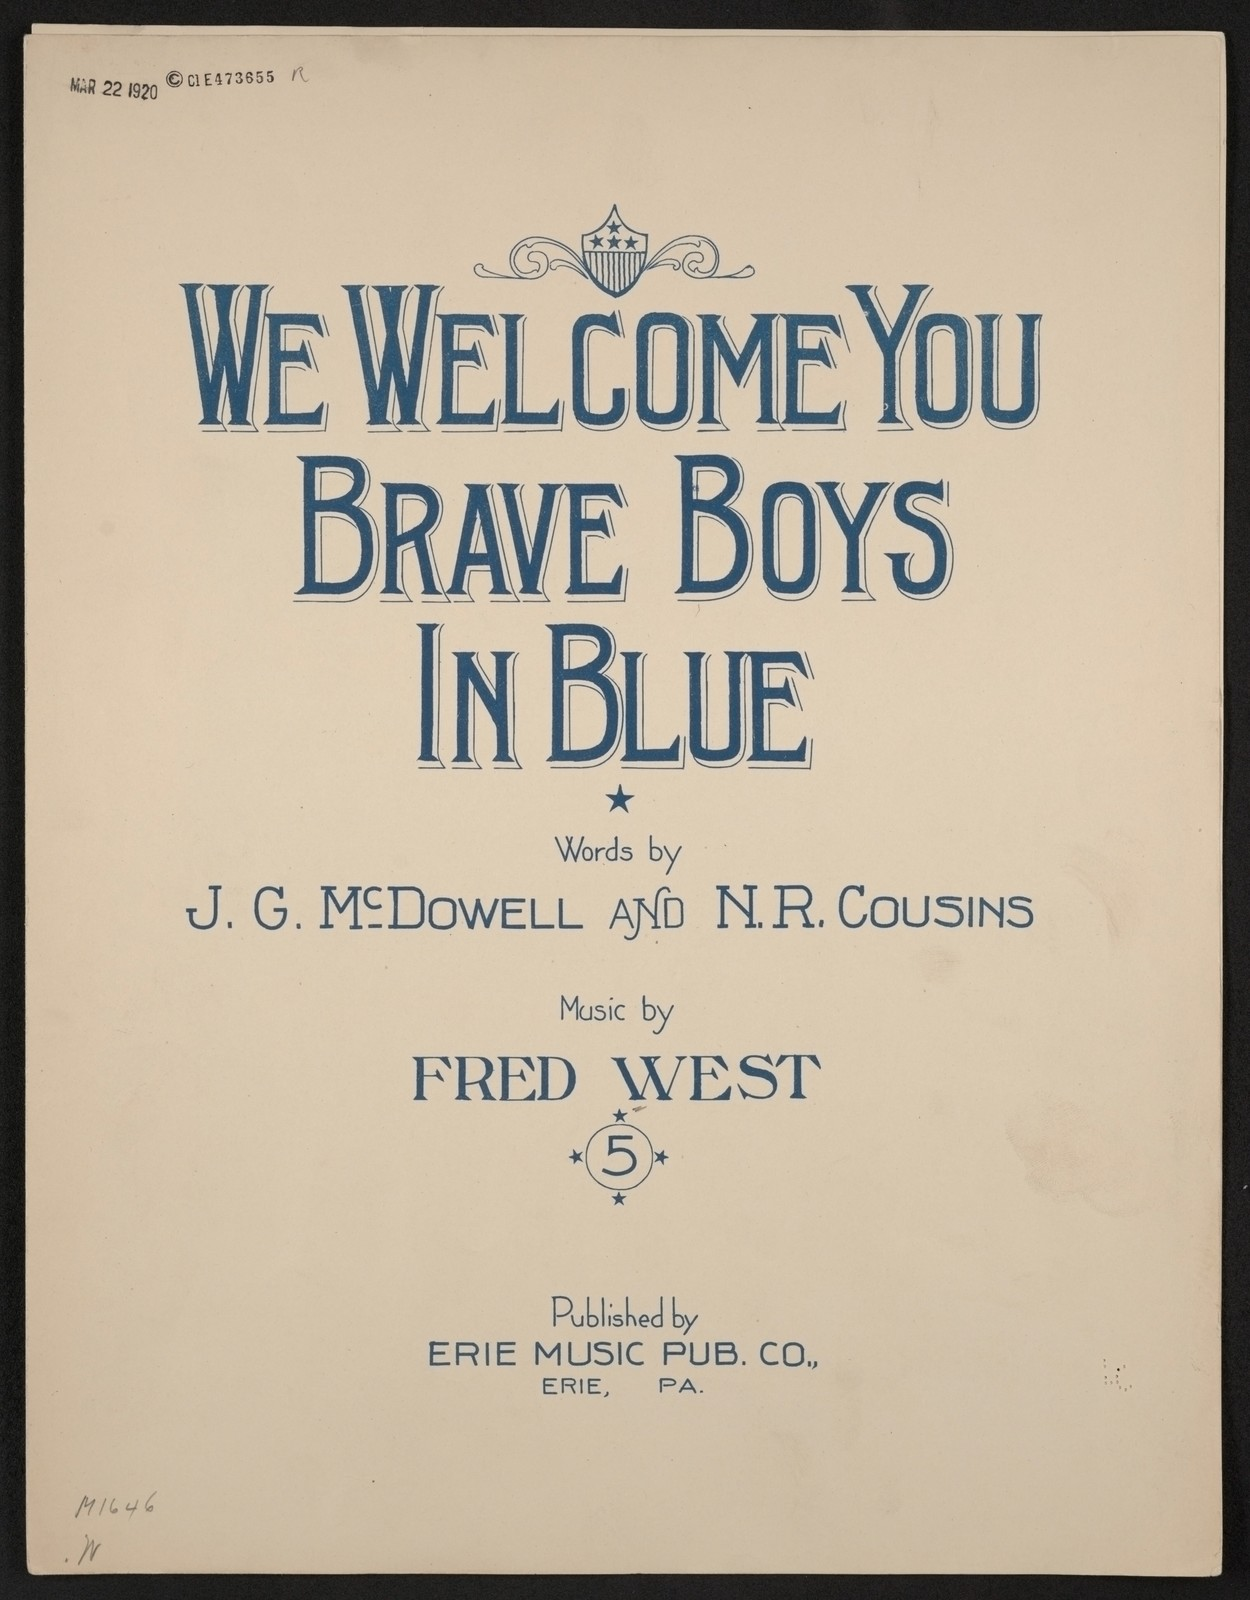 We welcome you brave boys in blue